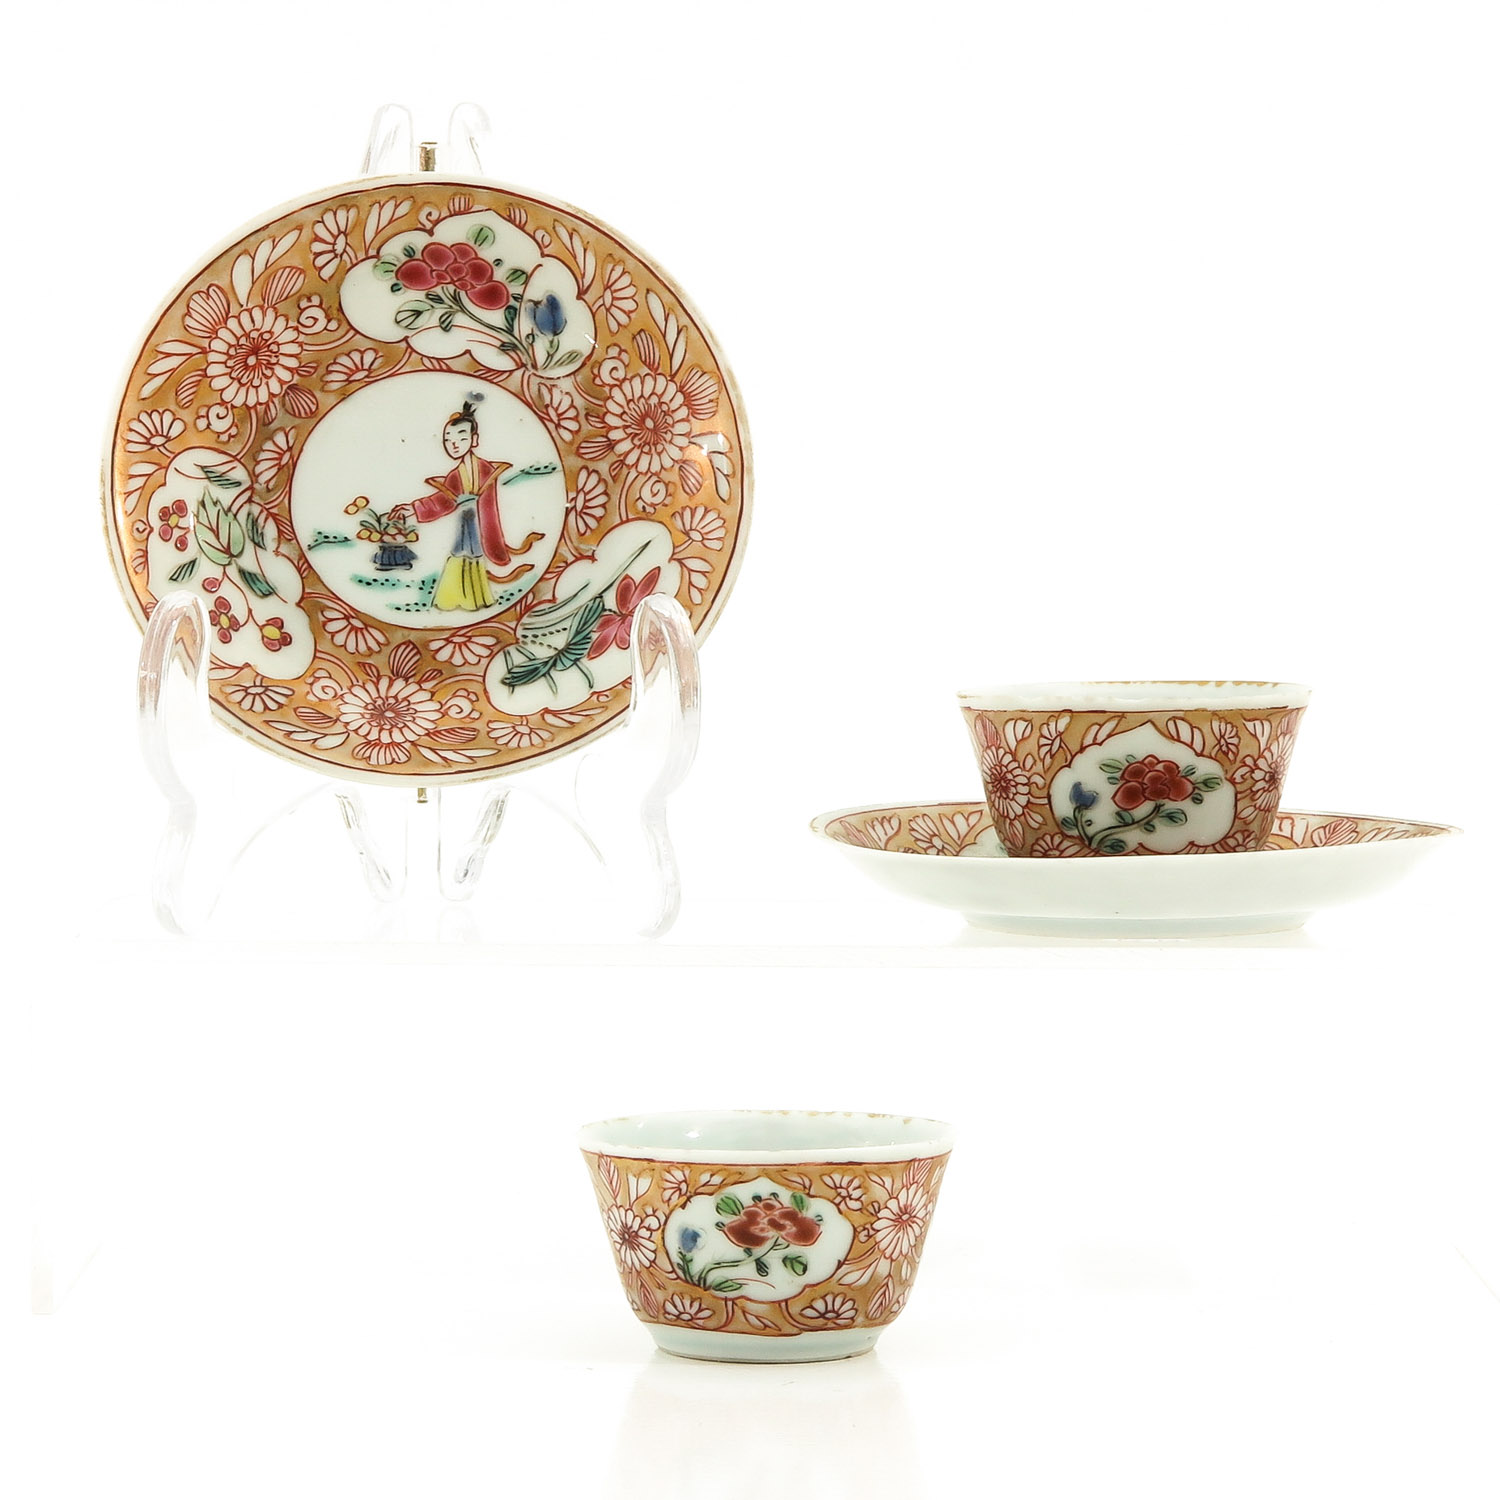 A Set of 2 Cups and Saucers